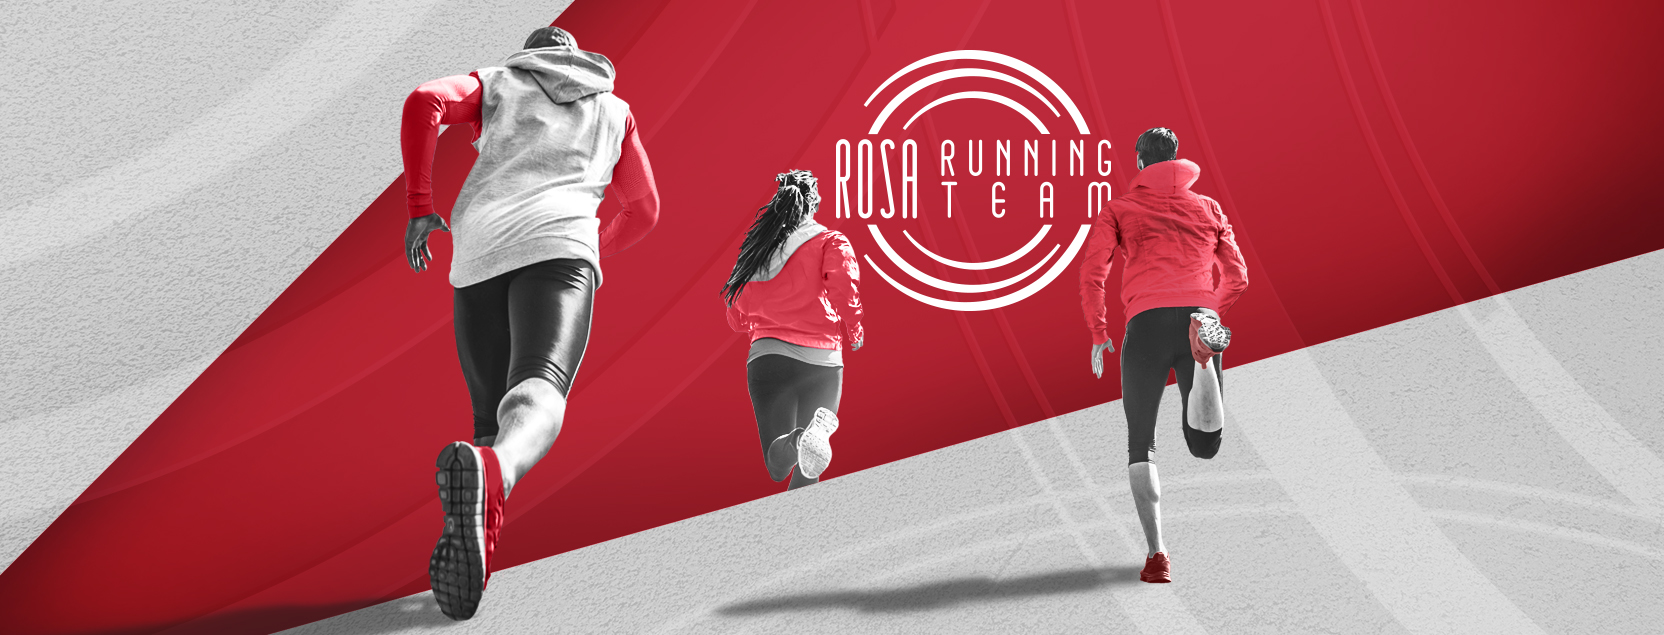 asd-rosa-running-team-cover